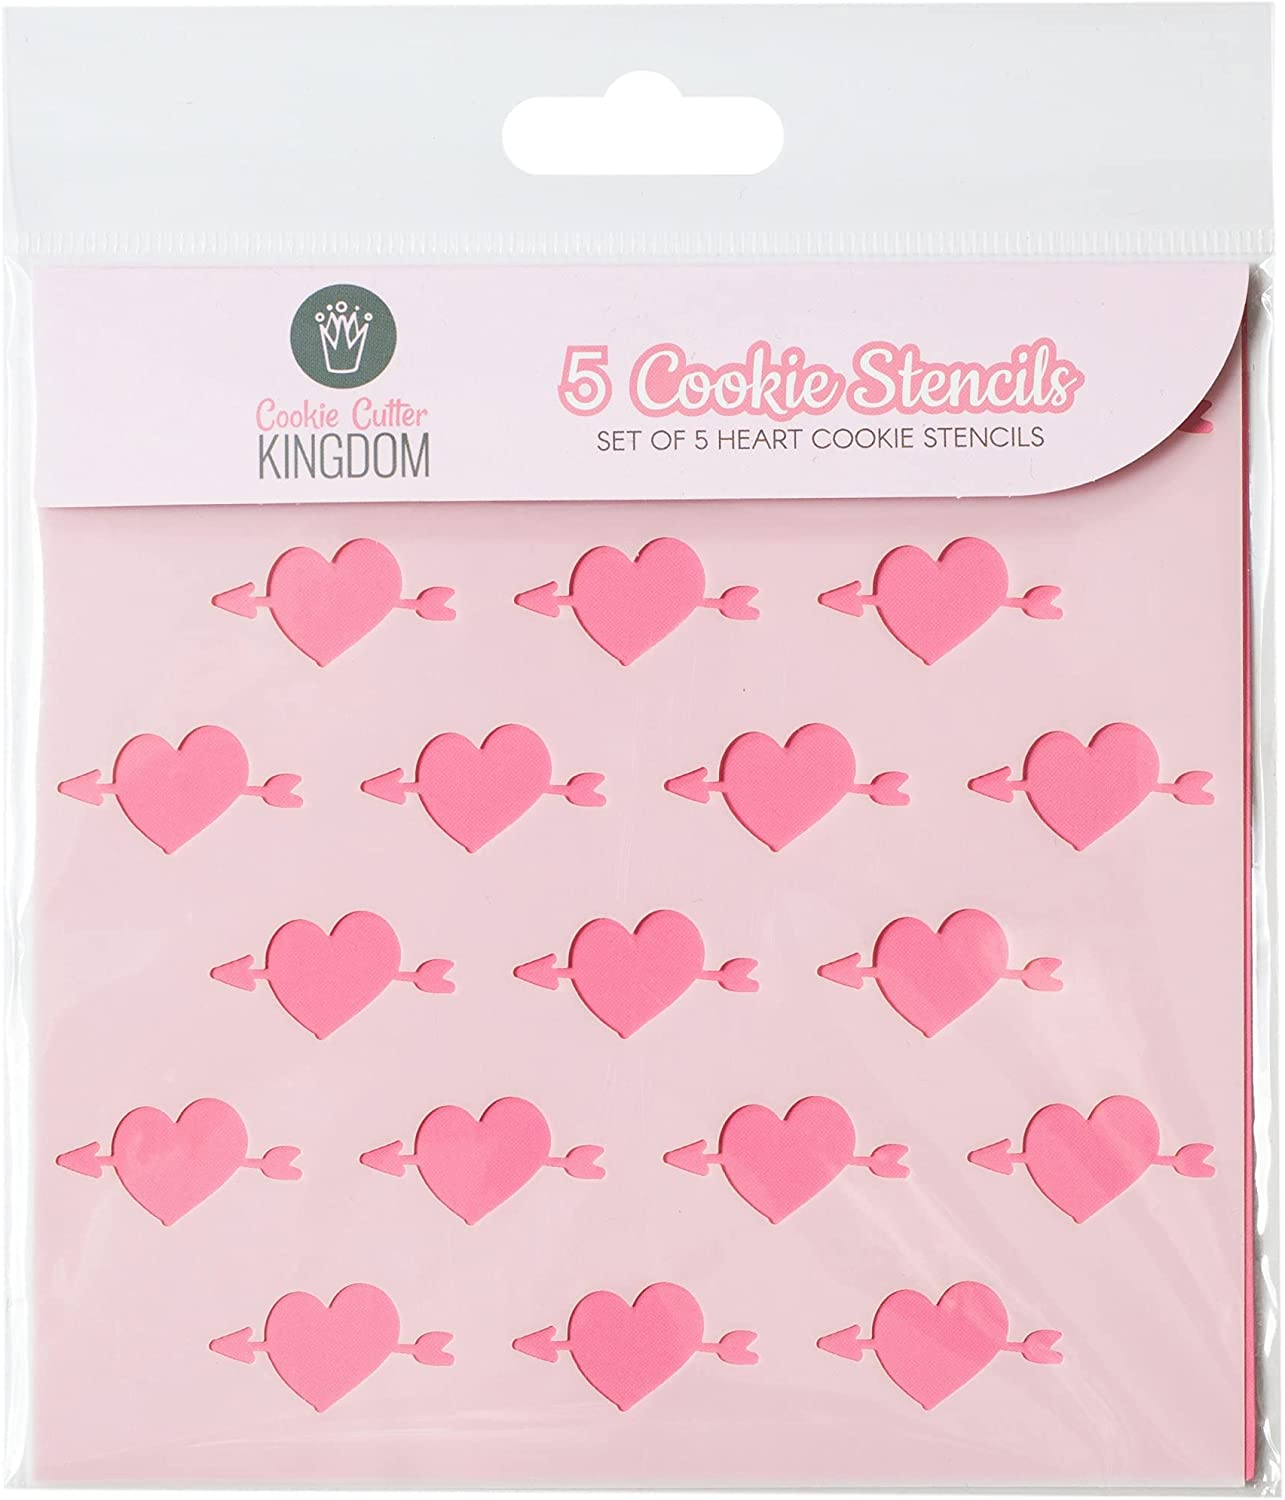 Hearts Cookie Stencil for Food Decorating. 5 Piece Cookie Cutter Kingdom Stencil for Royal Icing or Food Spray. 5.5 x 5.5 Inch Size. Valentine's Day Stencil.